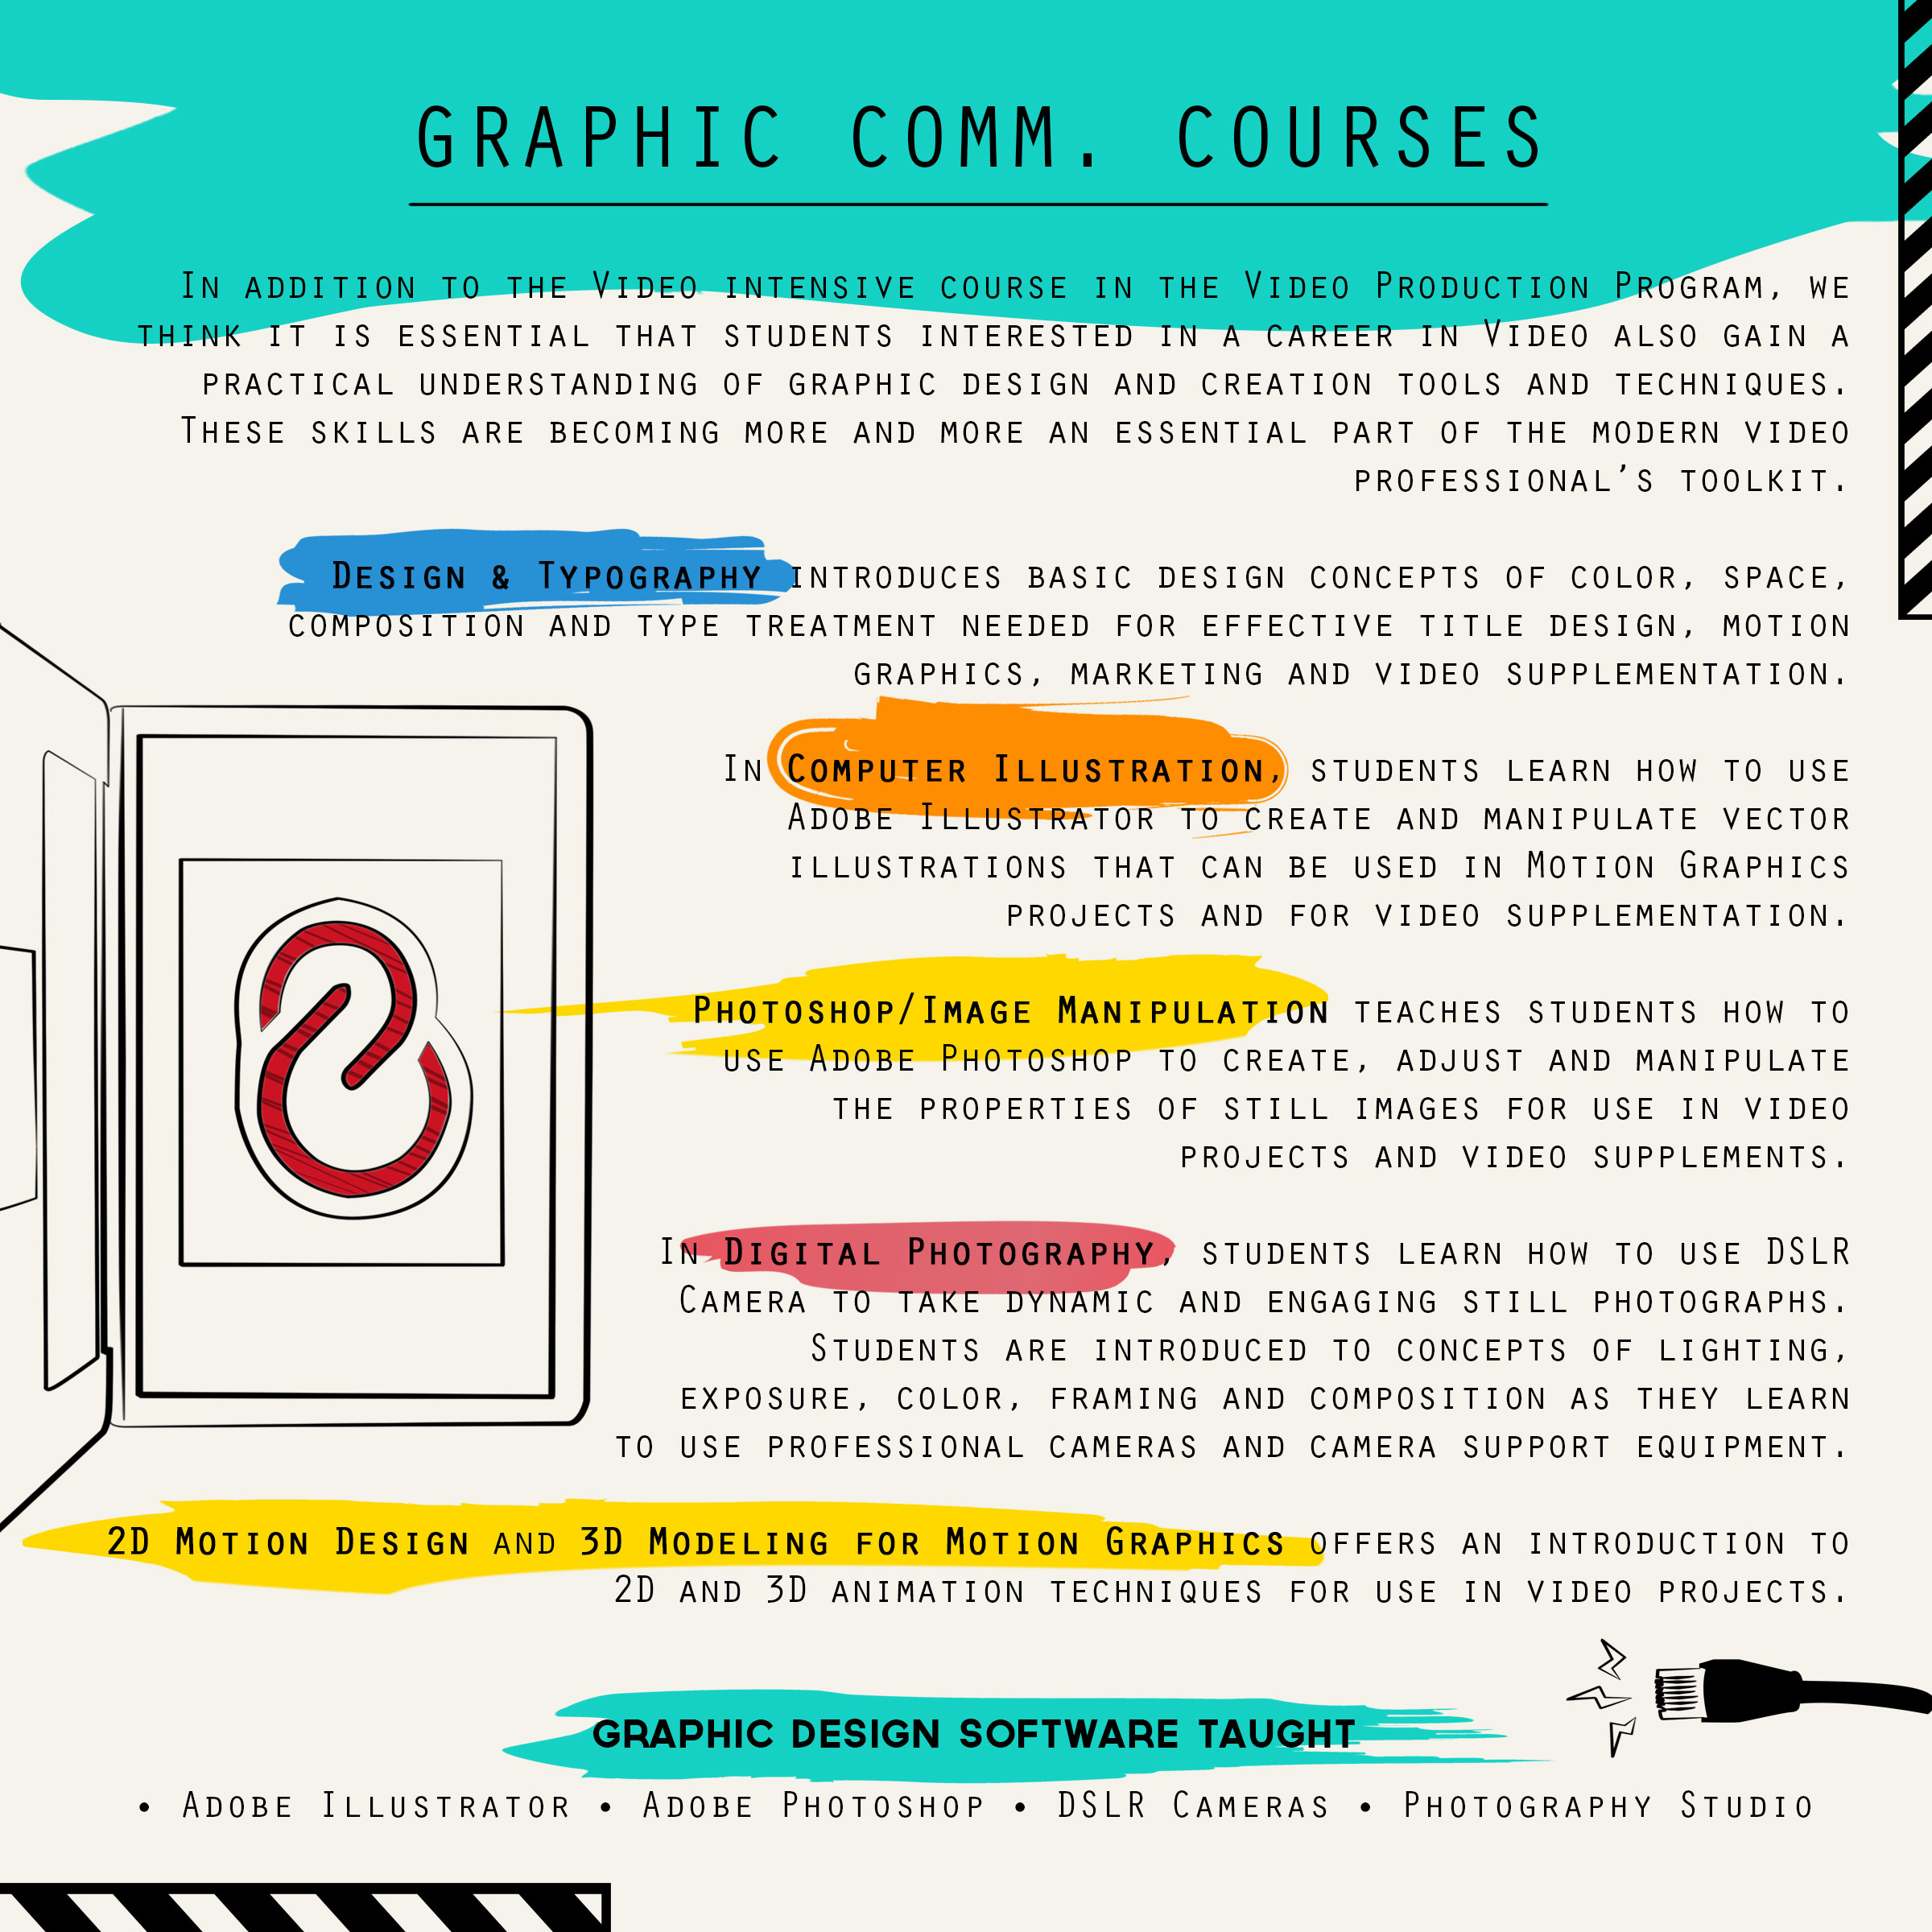 Graphic Communication Classes Video Production